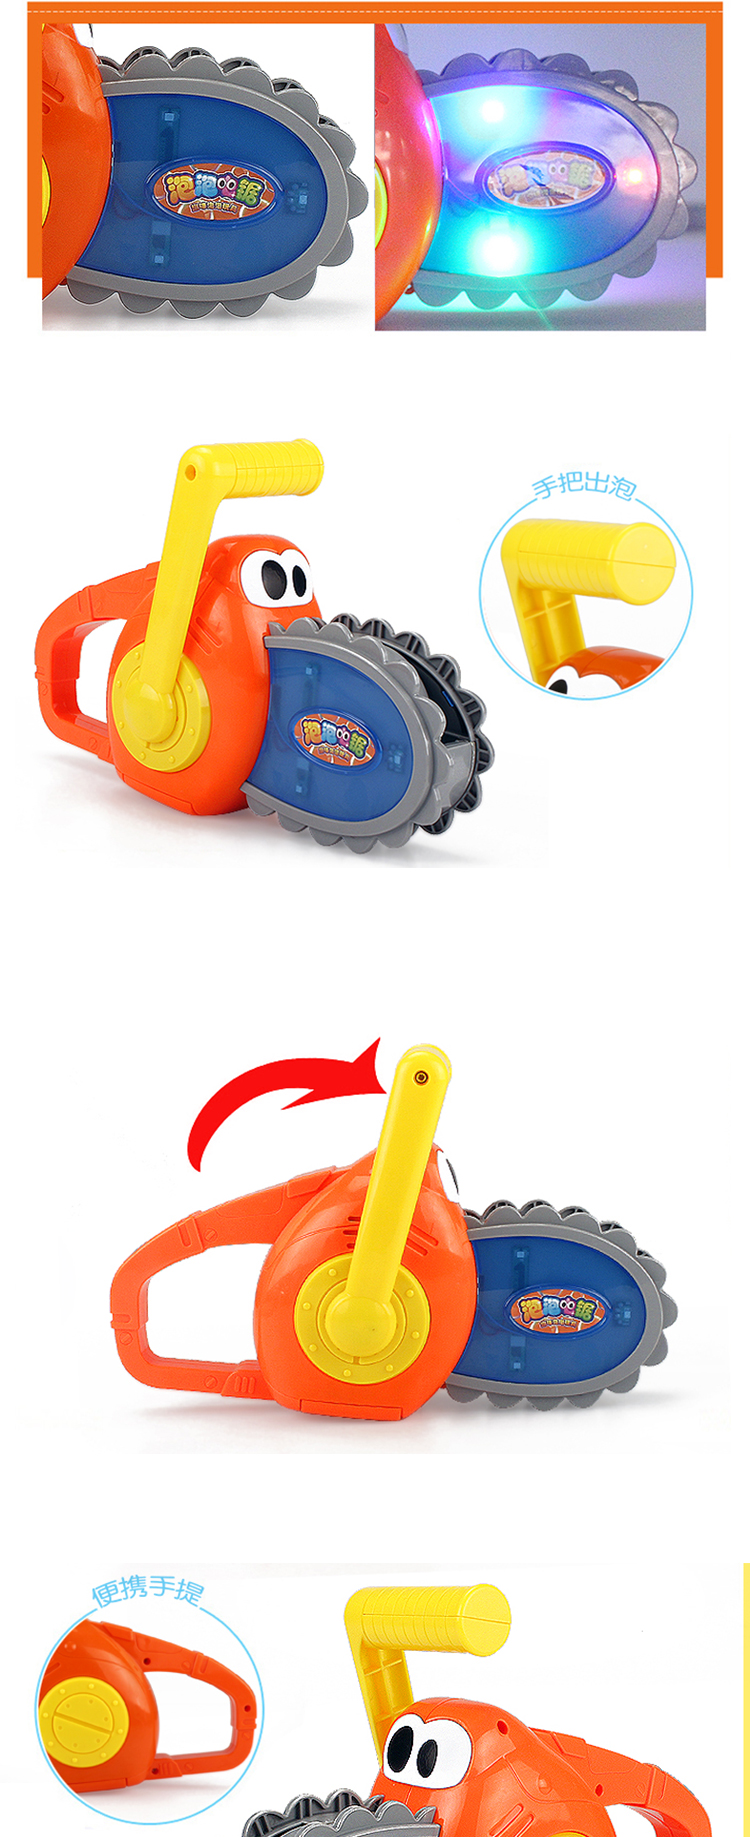 Cartoon electric saw toy kids water bubbles machine toy for sale